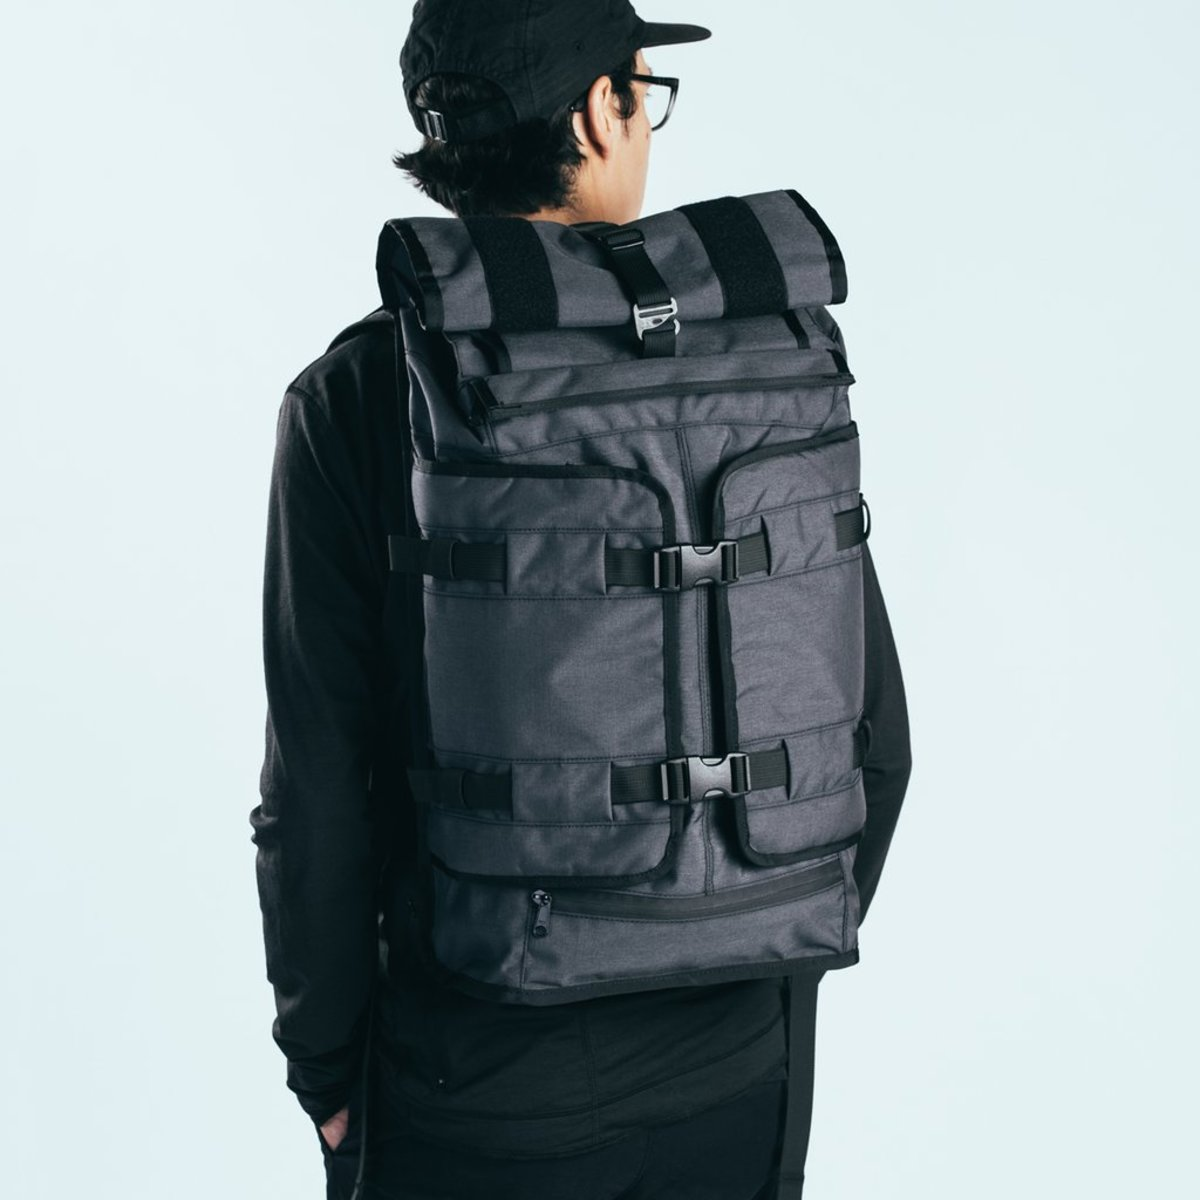 Mission Workshop make bags that work great for bike, travel and urban life. They innovate with formats, nail the aesthetics, and create backpacks and messenger bags that hold up to solid abuse.